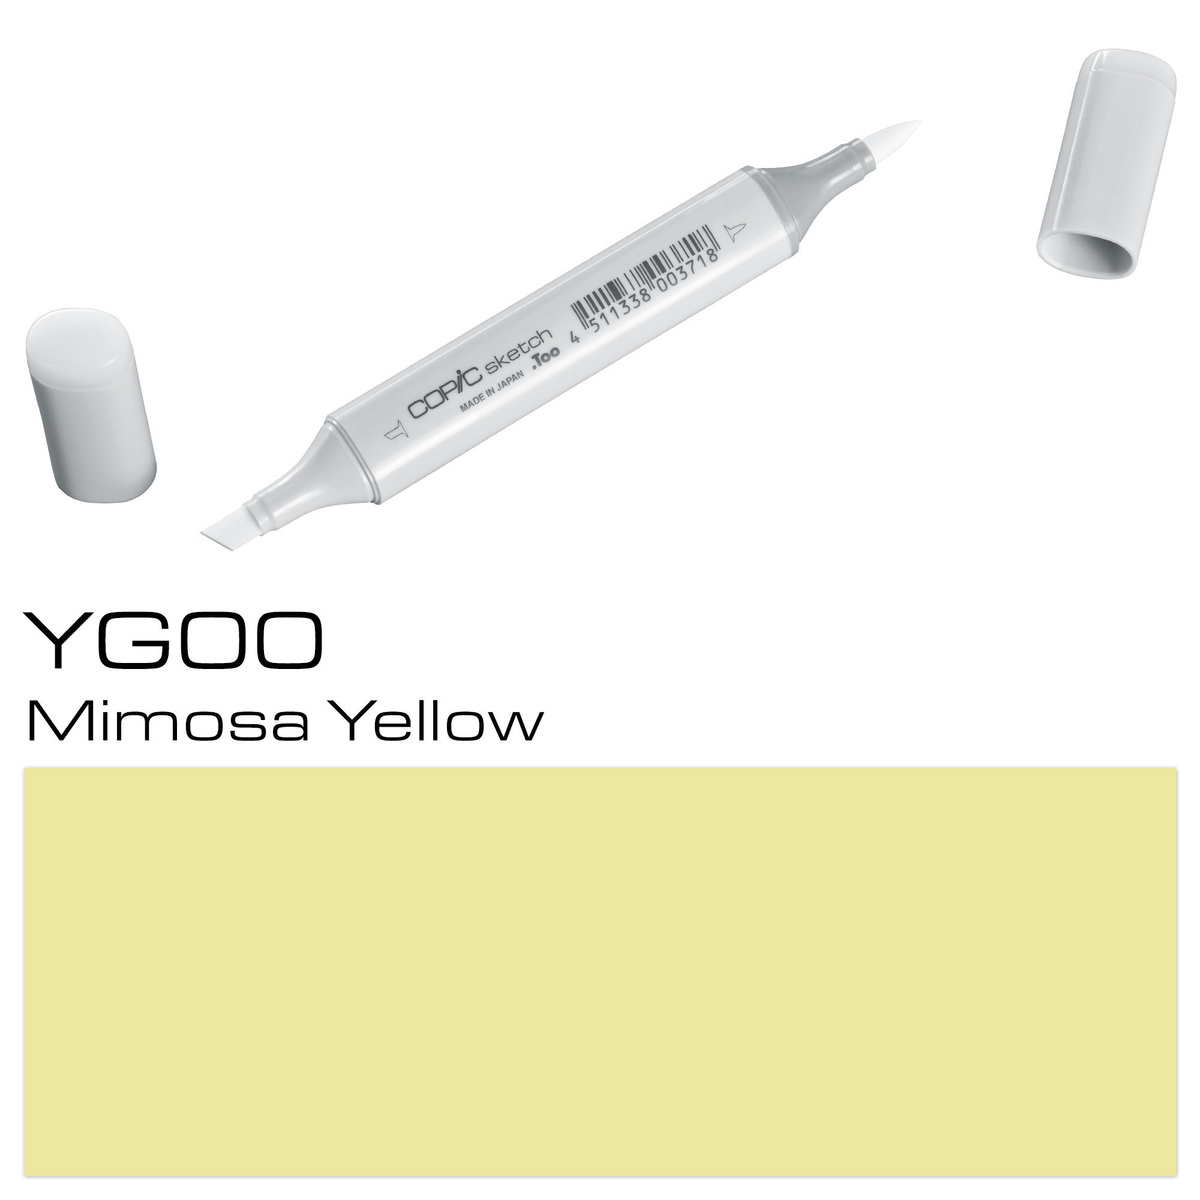 Copic Sketch YG 00 mimosa yell